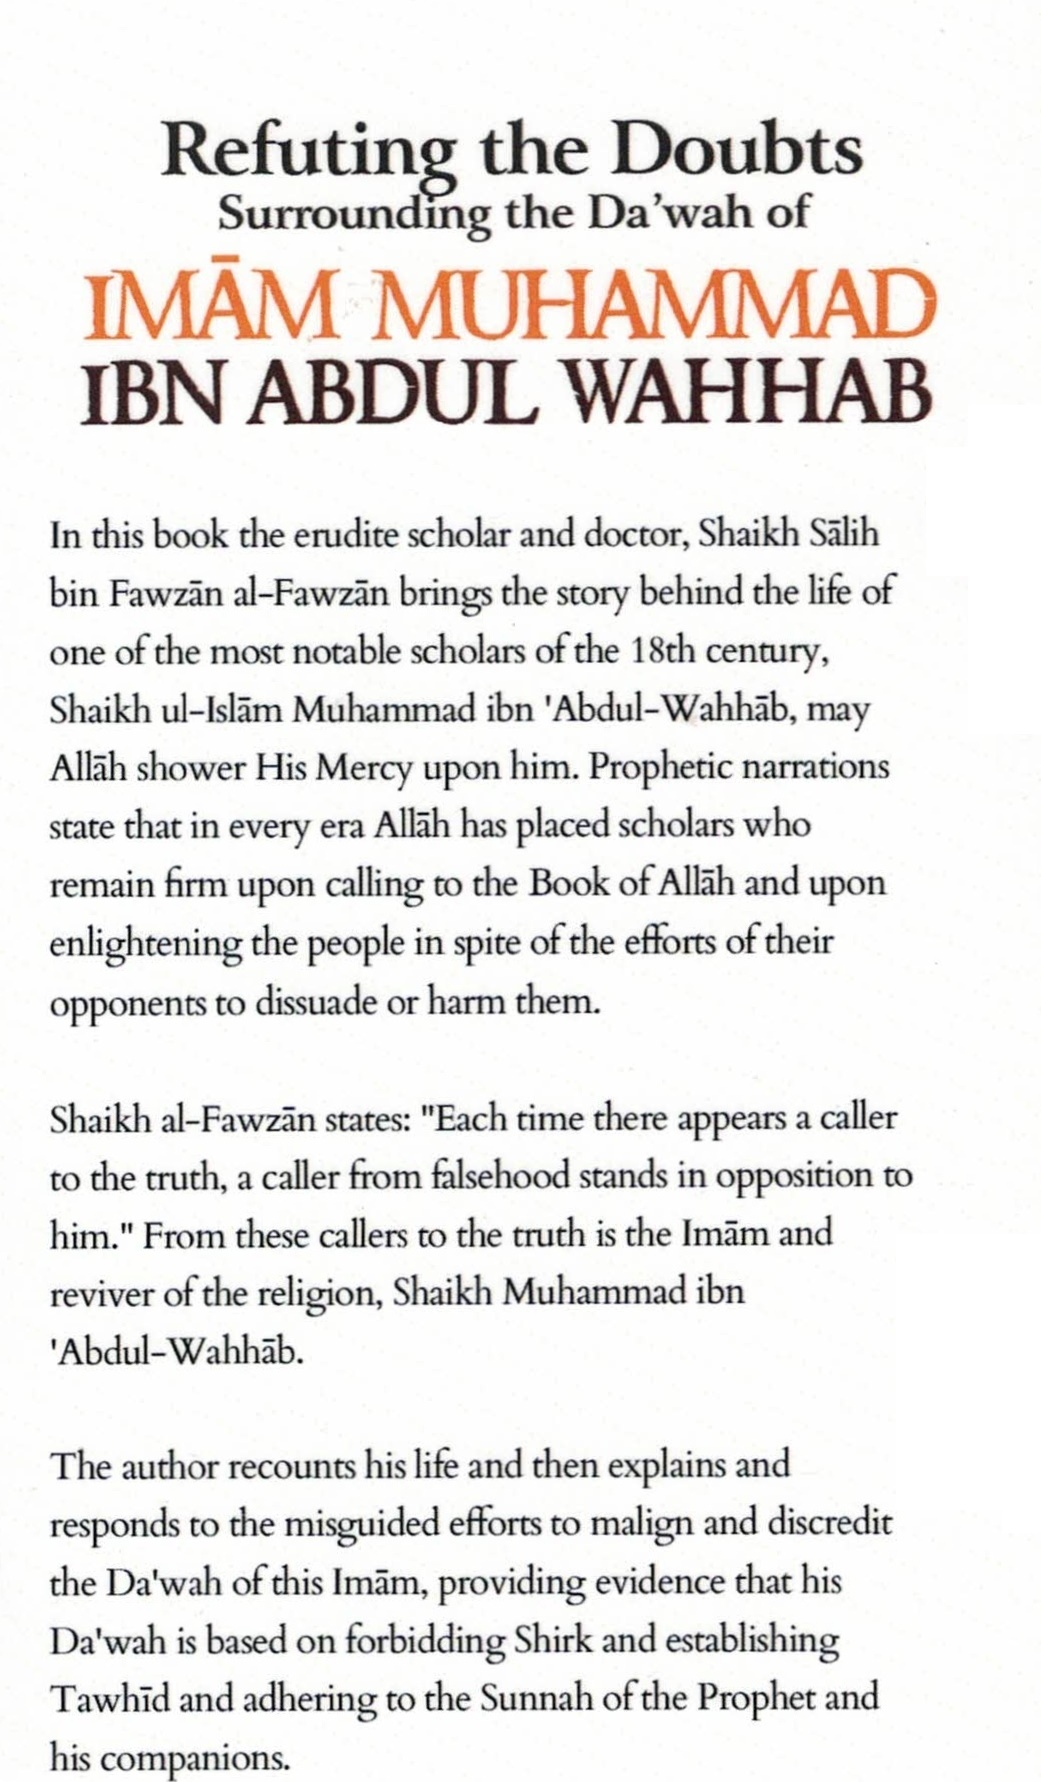 refuting-the-doubts-surrounding-the-da-wah-of-imam-muhammad-ibn-abdul-wahhab-by-dr-salih-bin-fawzan-2-copy.jpg